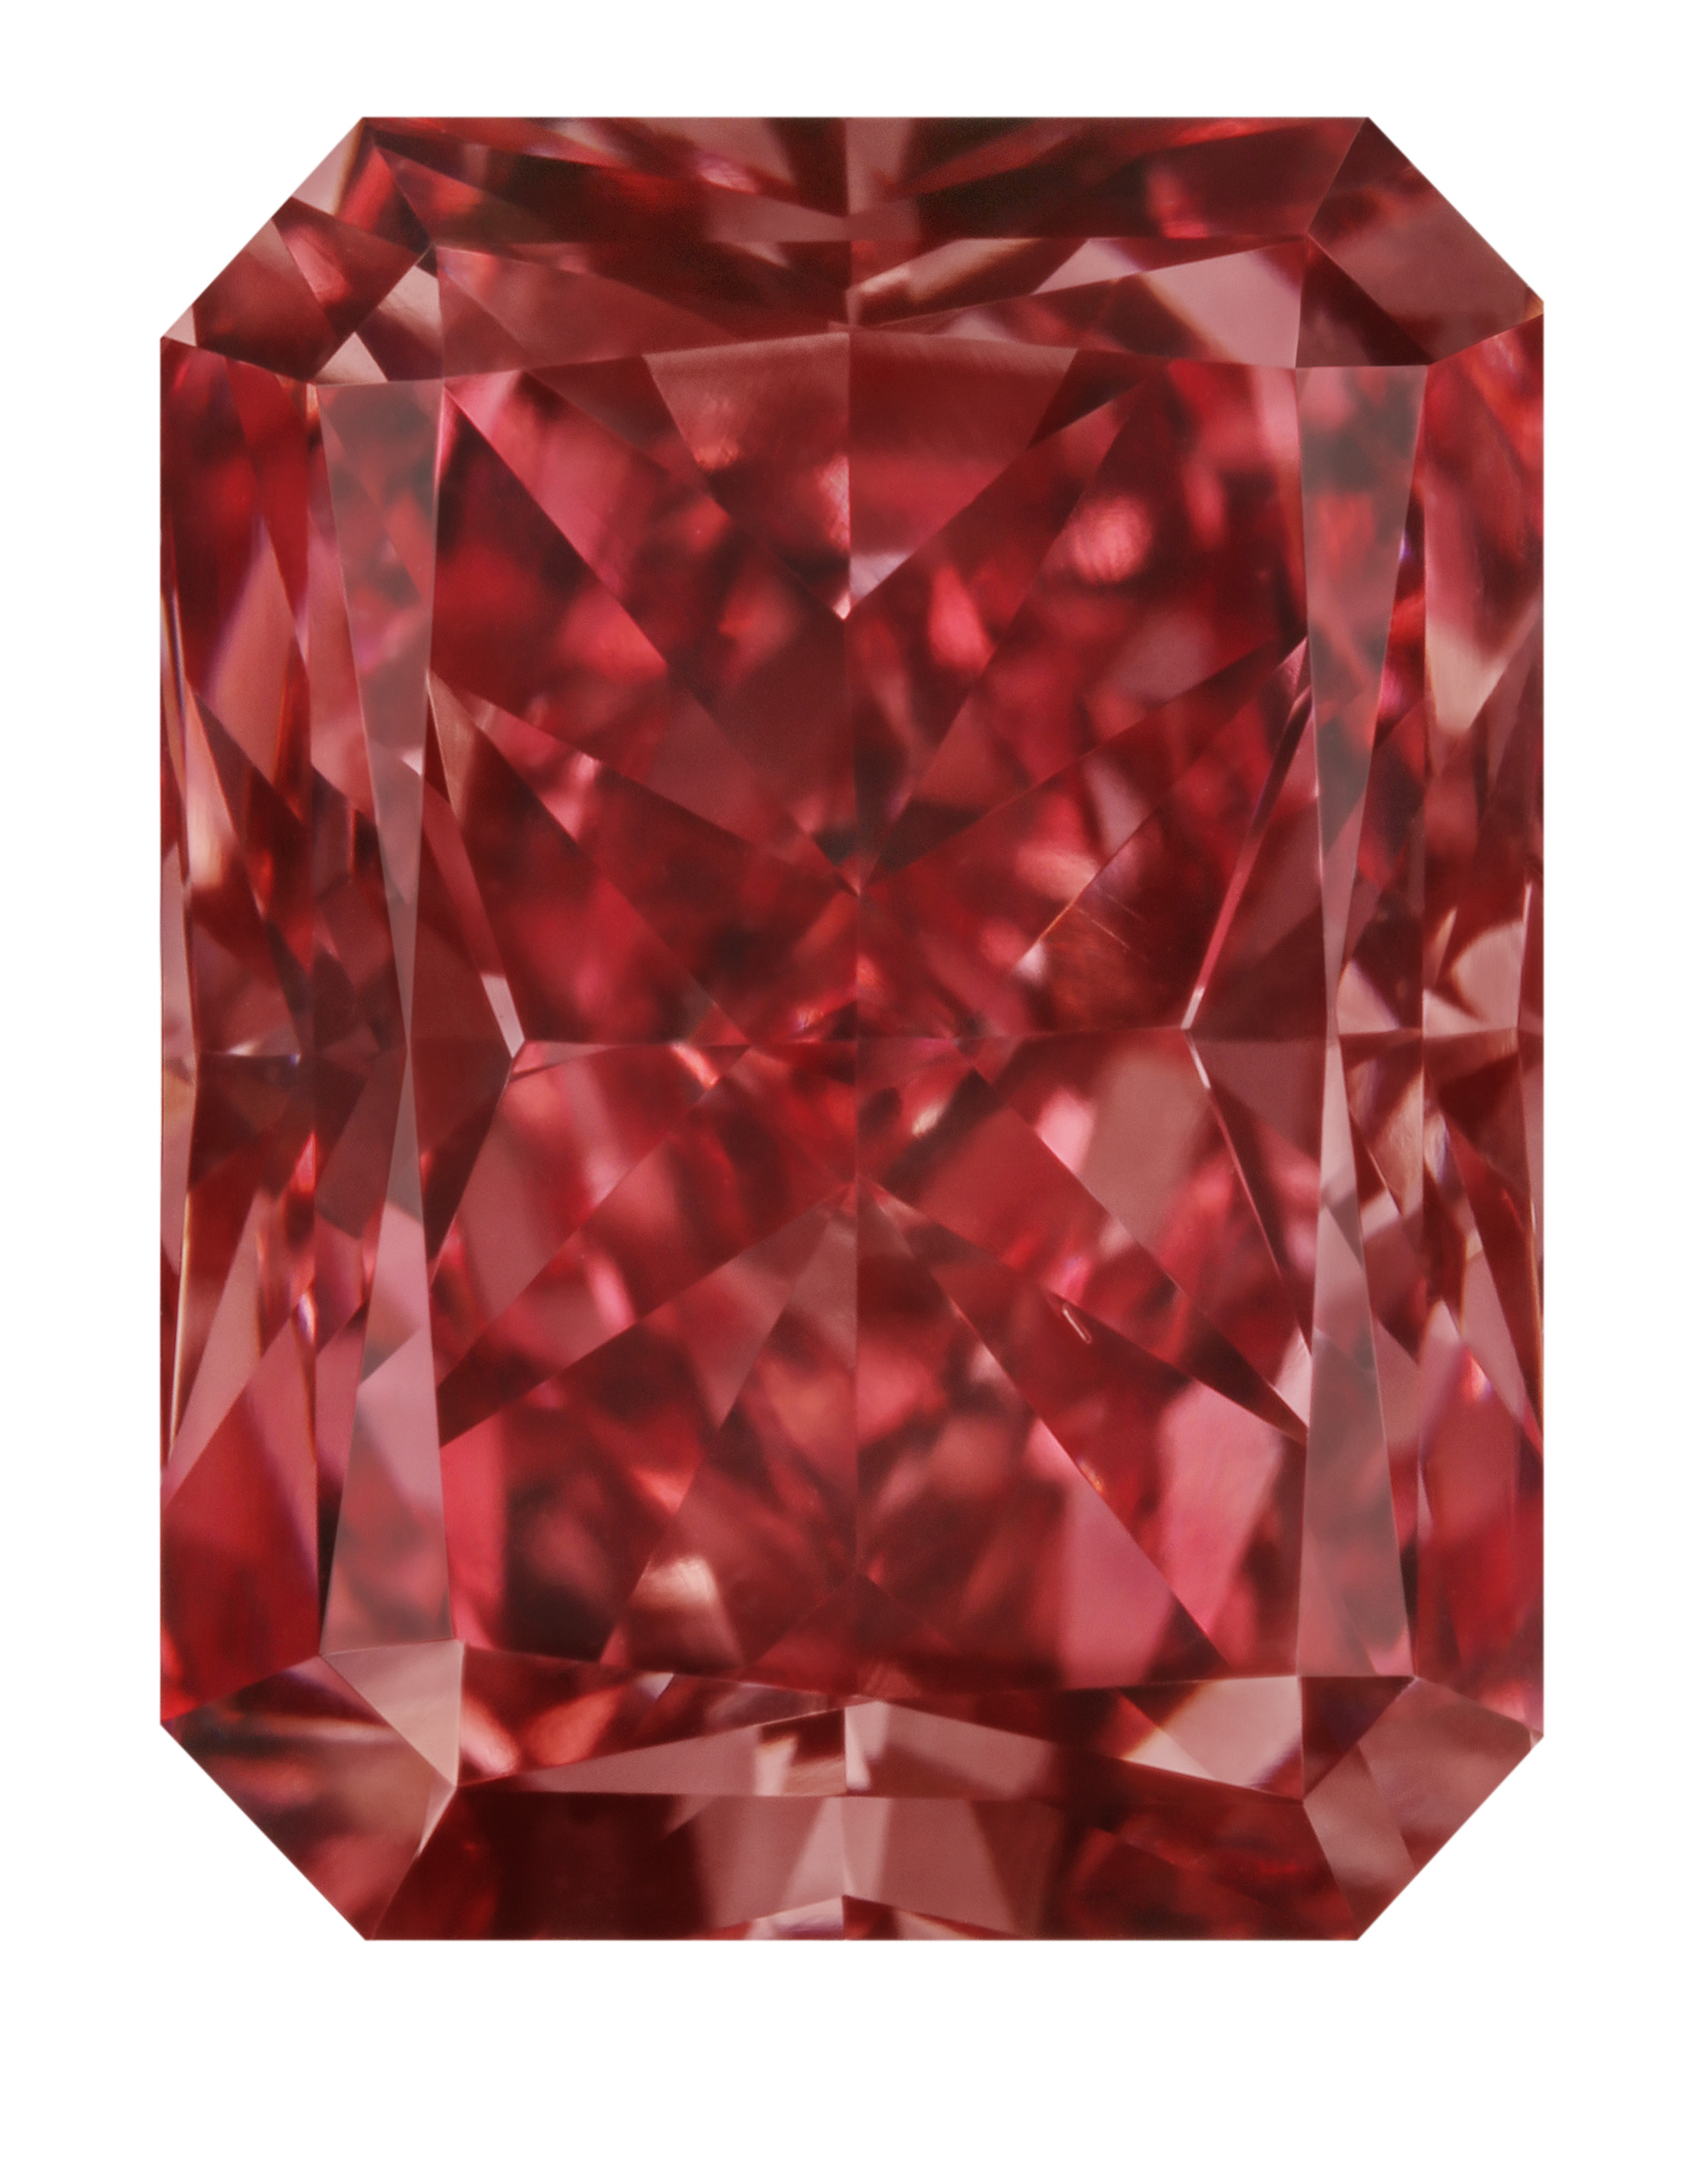 The Argyle Everglow™, a 2.11 carat polished radiant cut Fancy Red diamond. PHOTO: Copyright © 2017 Argyle Diamonds Limited